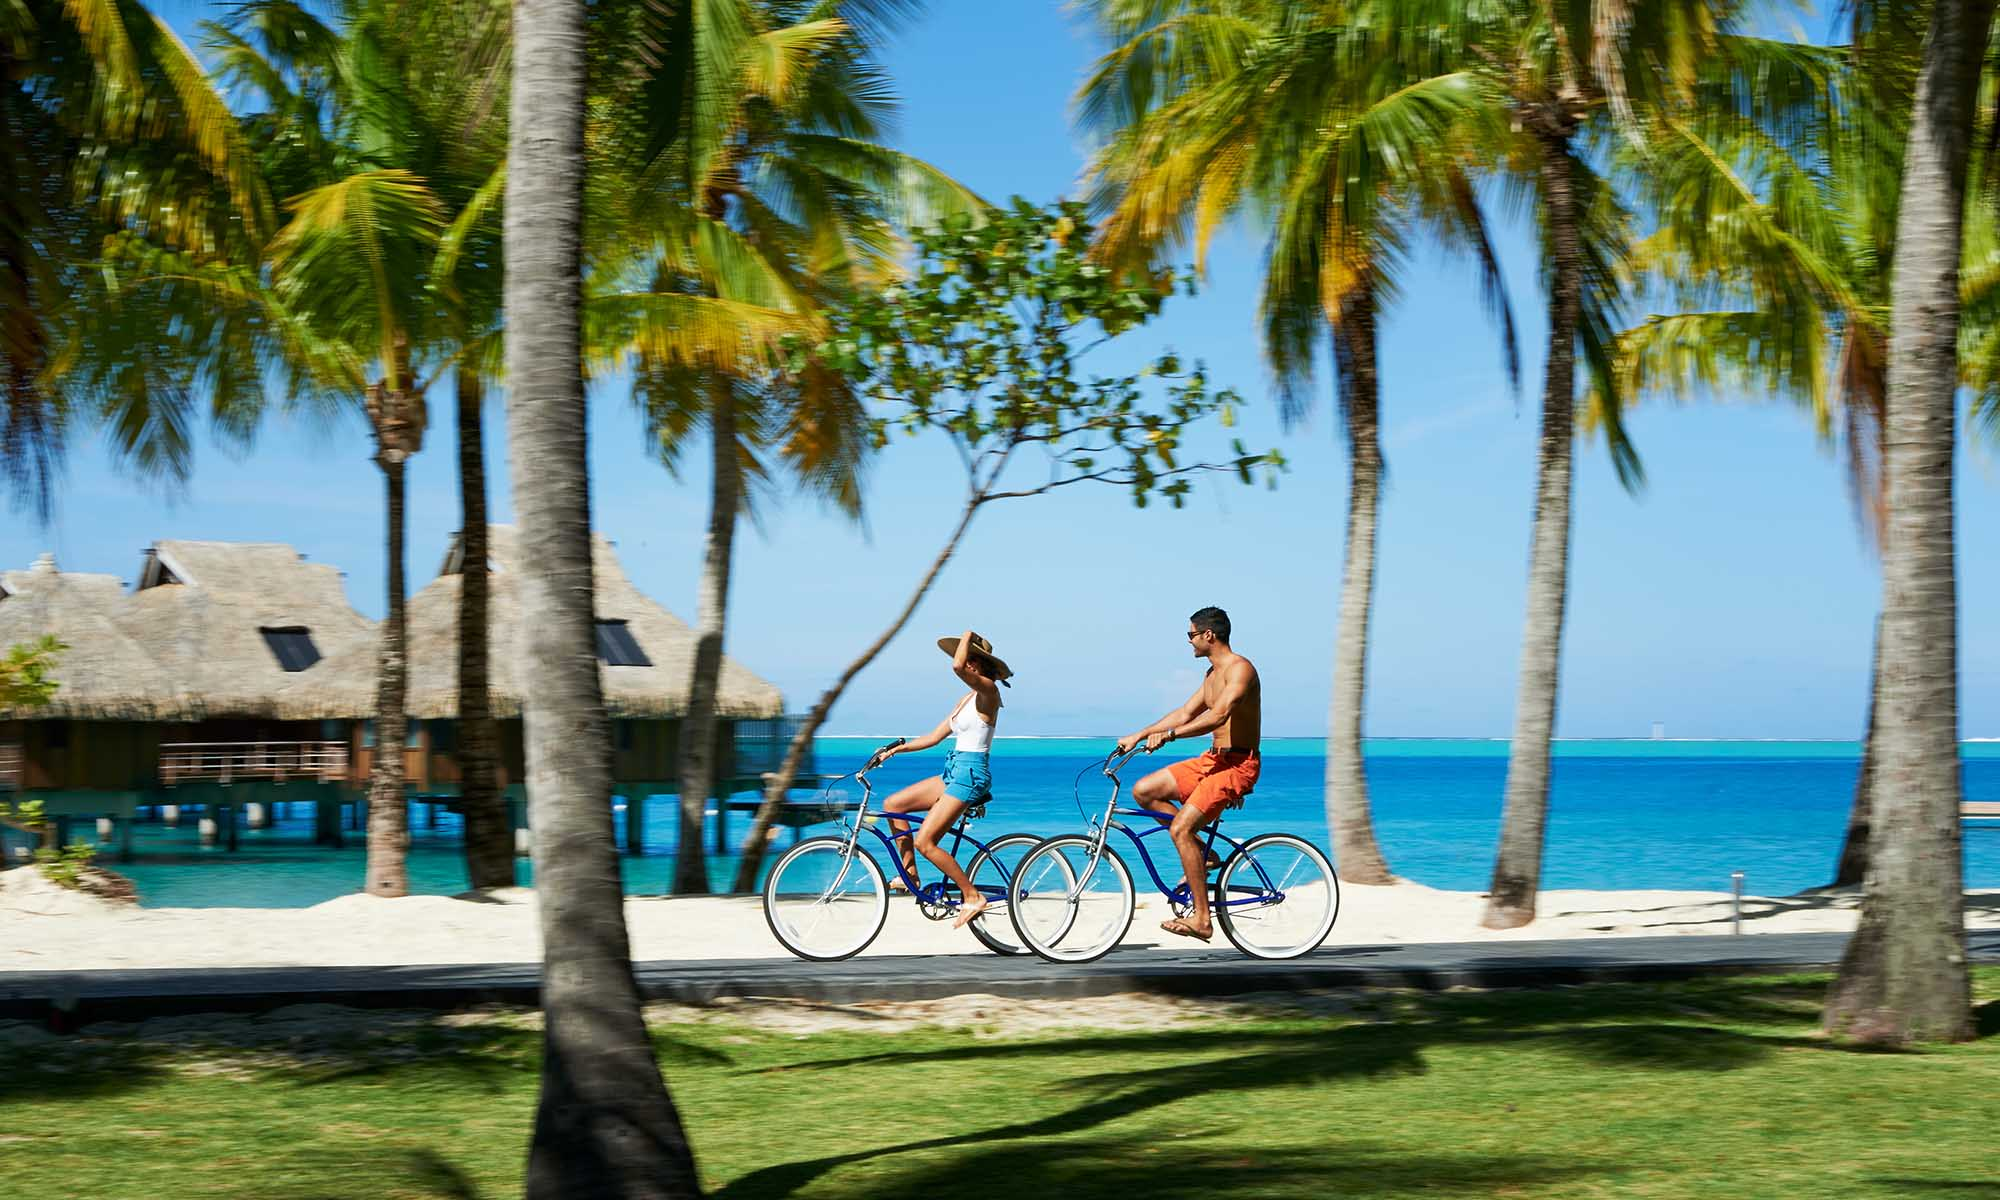 Conrad Bora Bora Nui, Bicycle Riding Through the Property